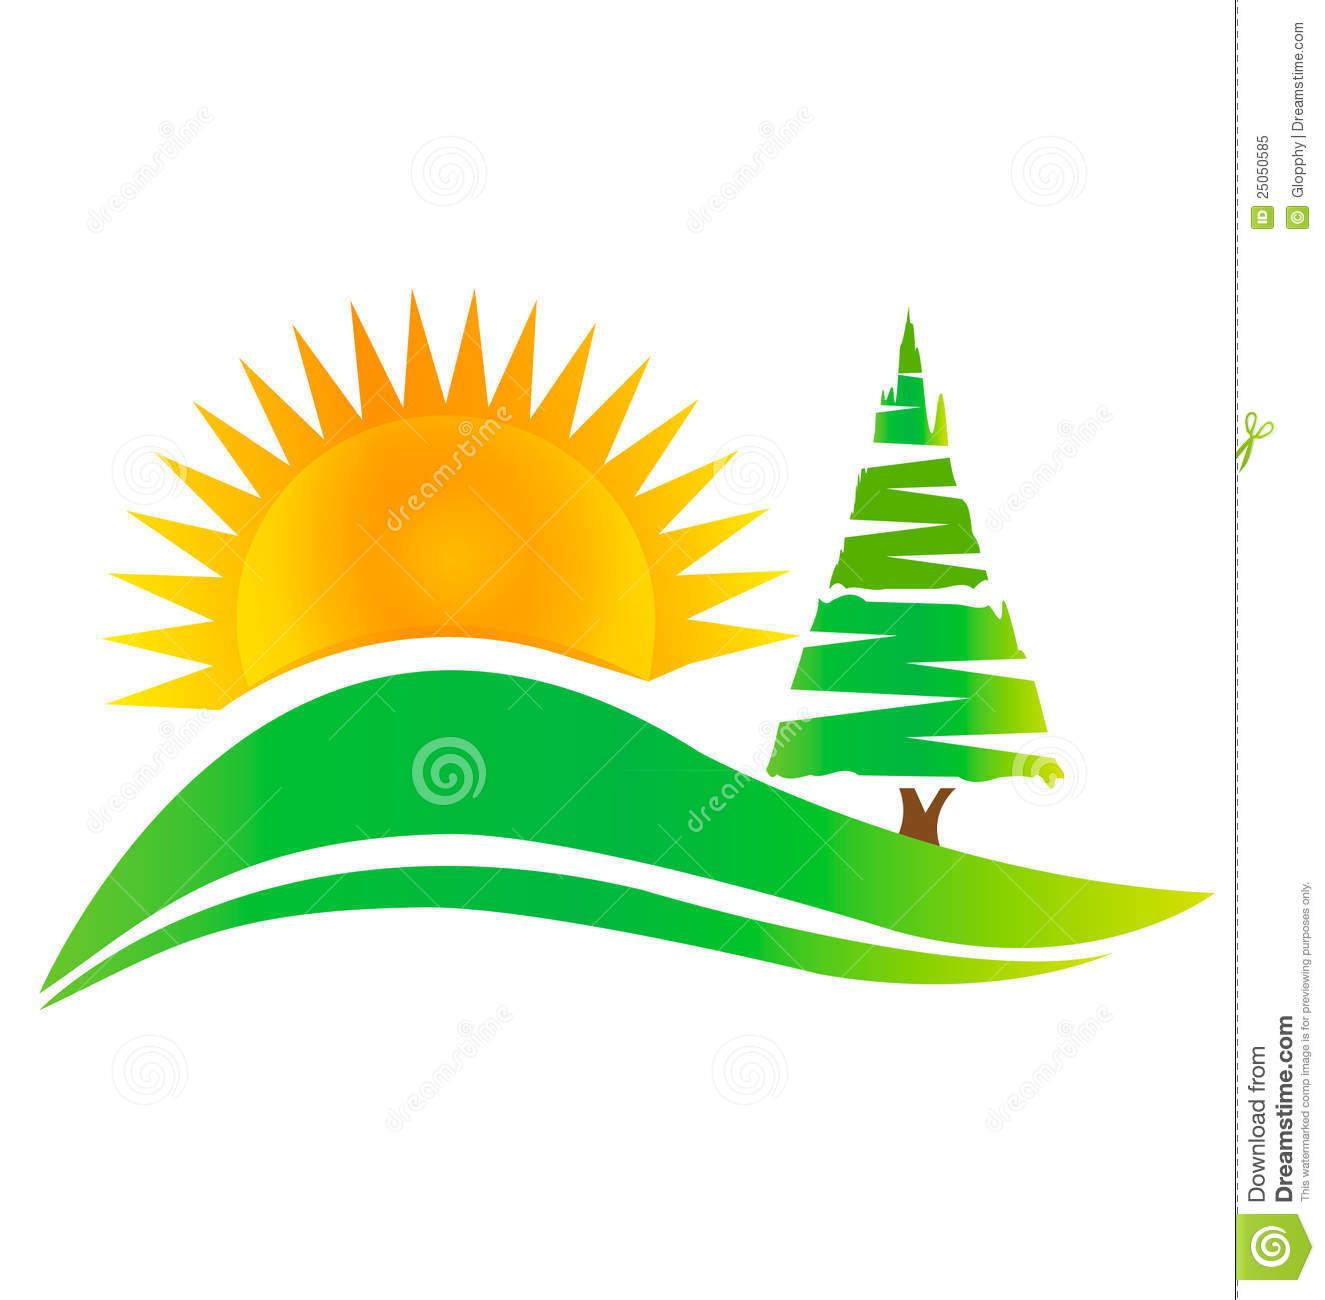 green tree hills and sun logo royalty free stock photo